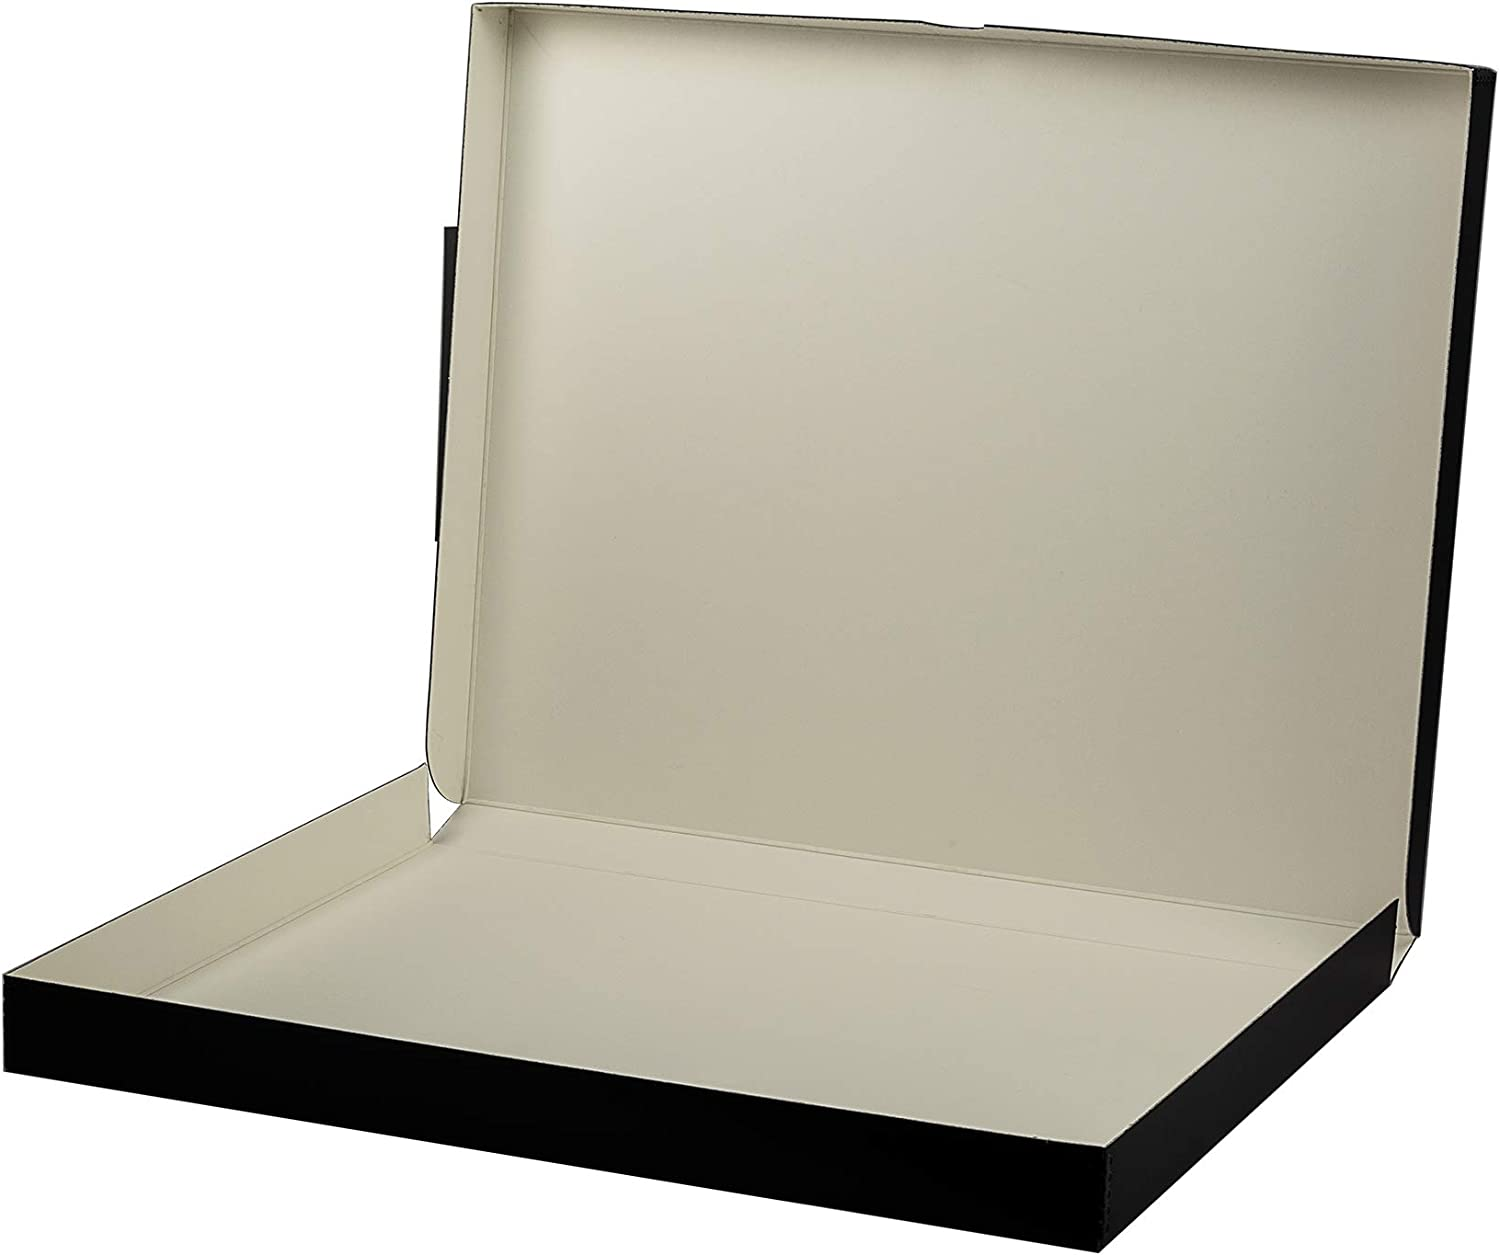 Lineco Grey 18x24 Clamshell Box 18.5 x 24.5 x 1.75 Store Photos or Documents Cards Prints Archival with Metal Edge.for Picture Longevity Magazines Wedding Dress DIY. Crafts